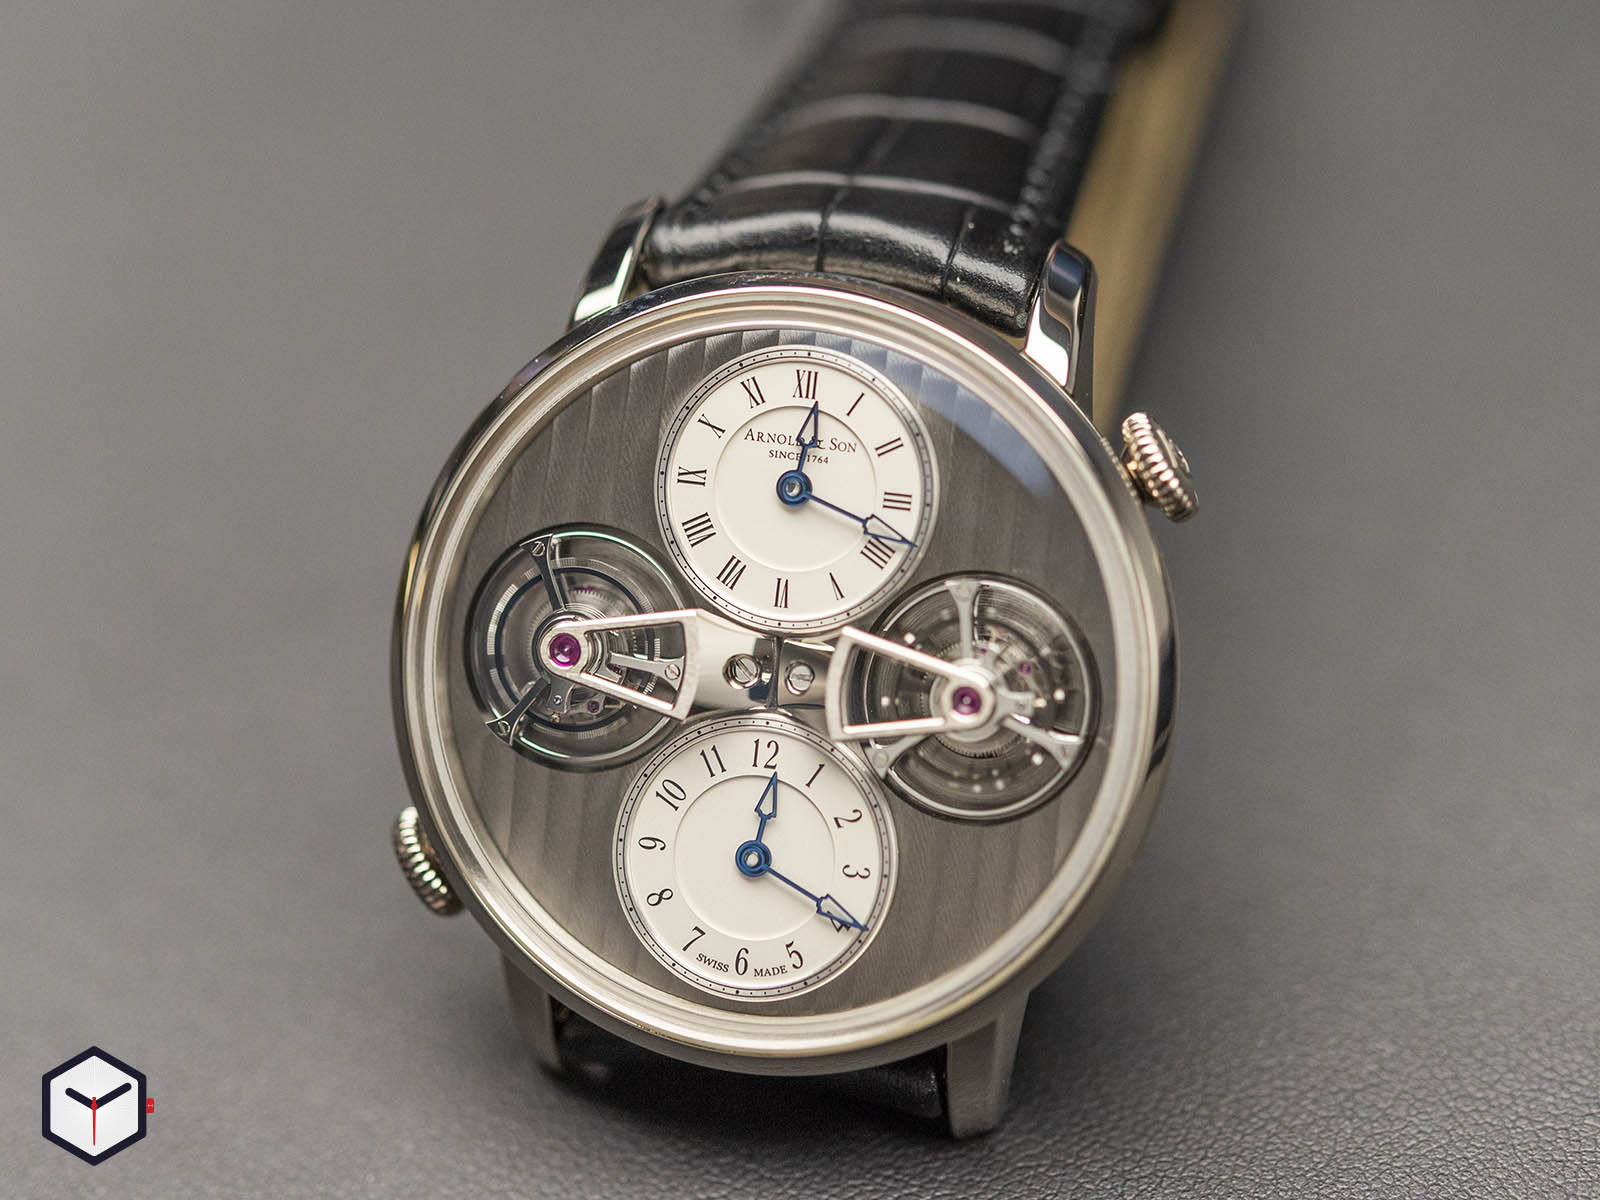 1dtaw-s01a-c121w-arnold-son-double-tourbillon-escapement-18k-white-gold-1.jpg